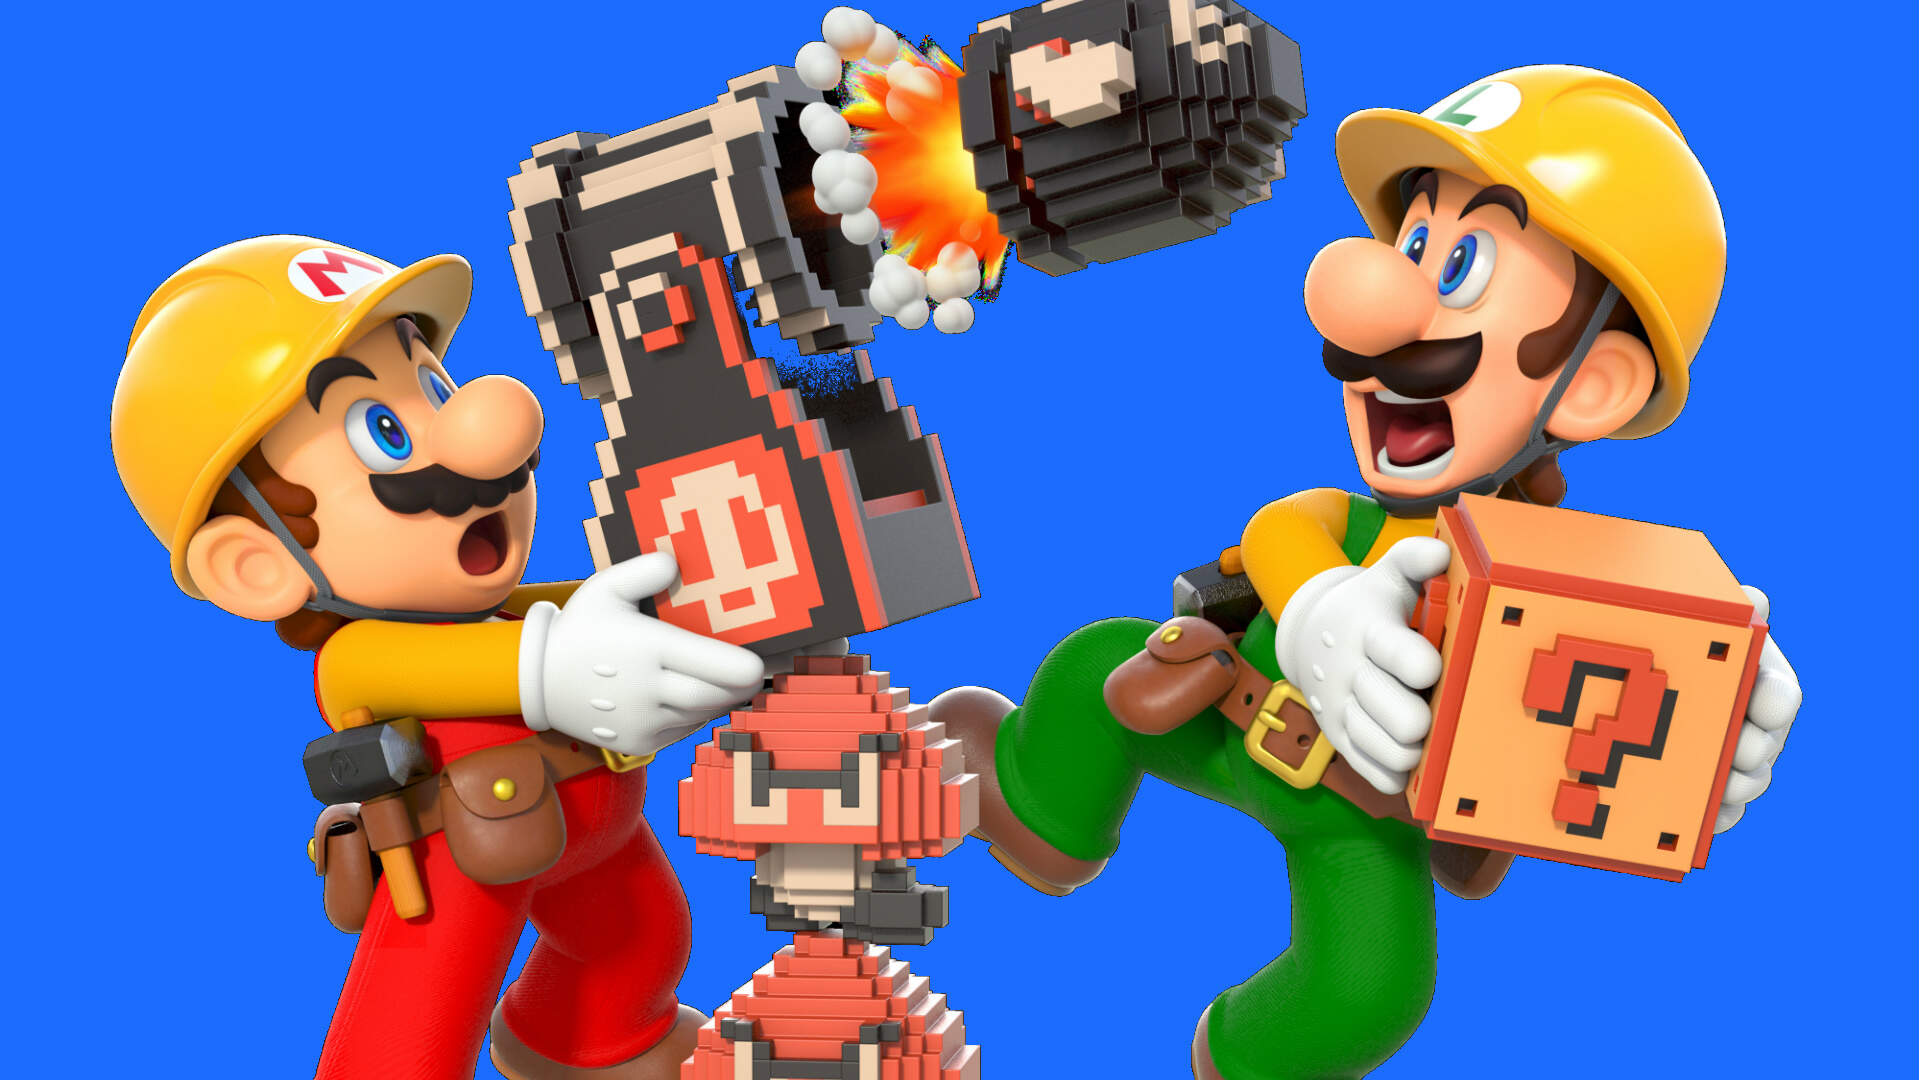 Mario Maker 2: Do You Need a Nintendo Online Subscription to Play?